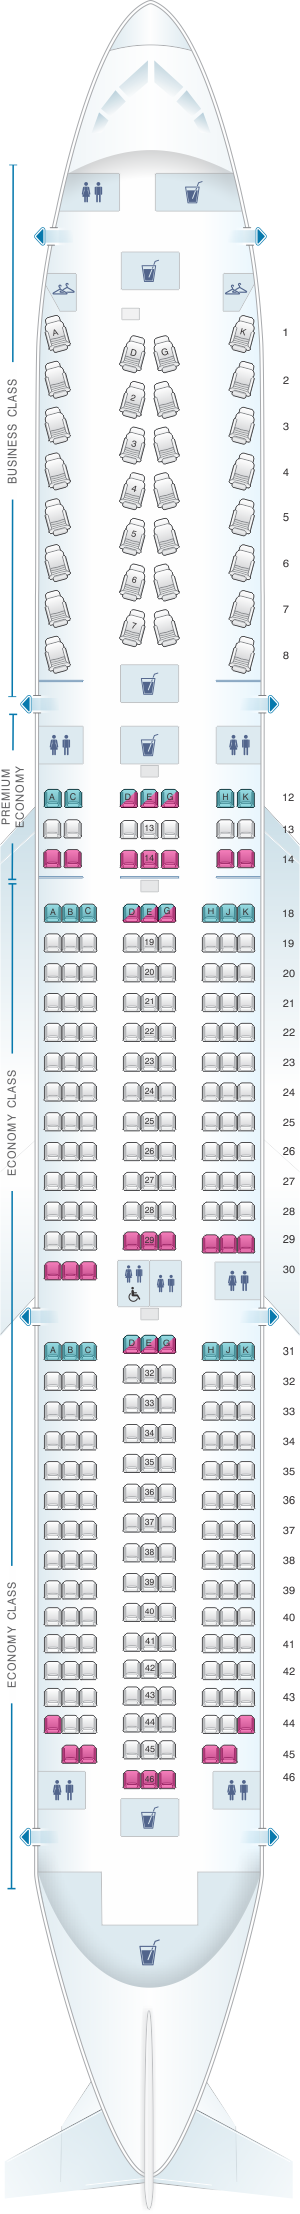 Seat map for Air Canada Boeing B787-9 (789) International